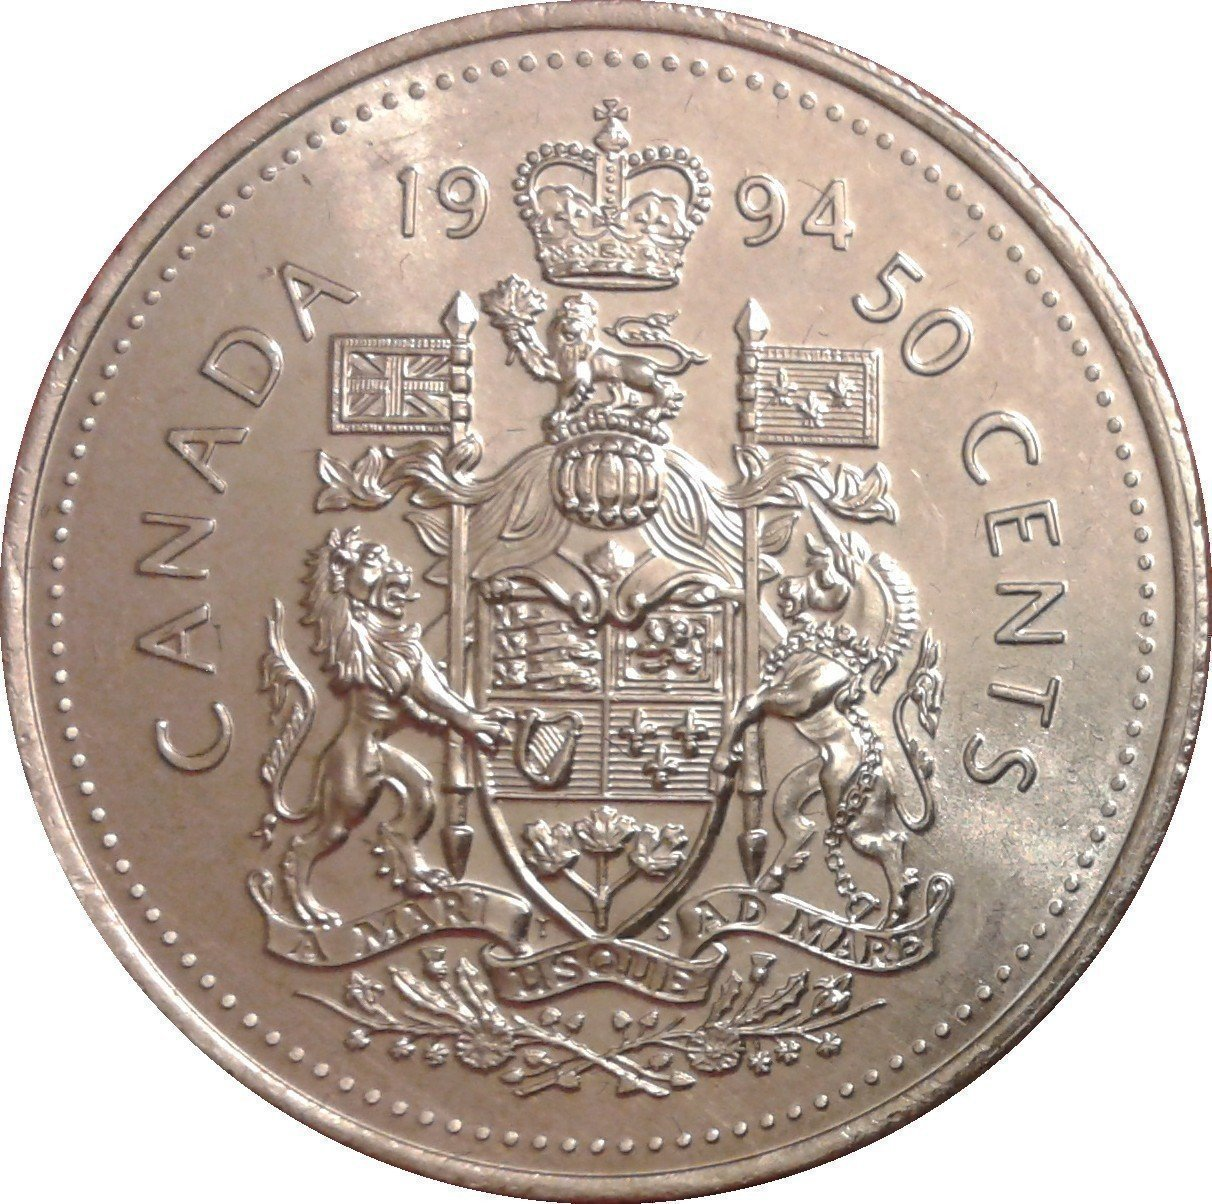 """Illustration of the specifics of the 50 Cents """"Elizabeth II 3rd portrait"""" 1990 - 1996 KM# 185"""